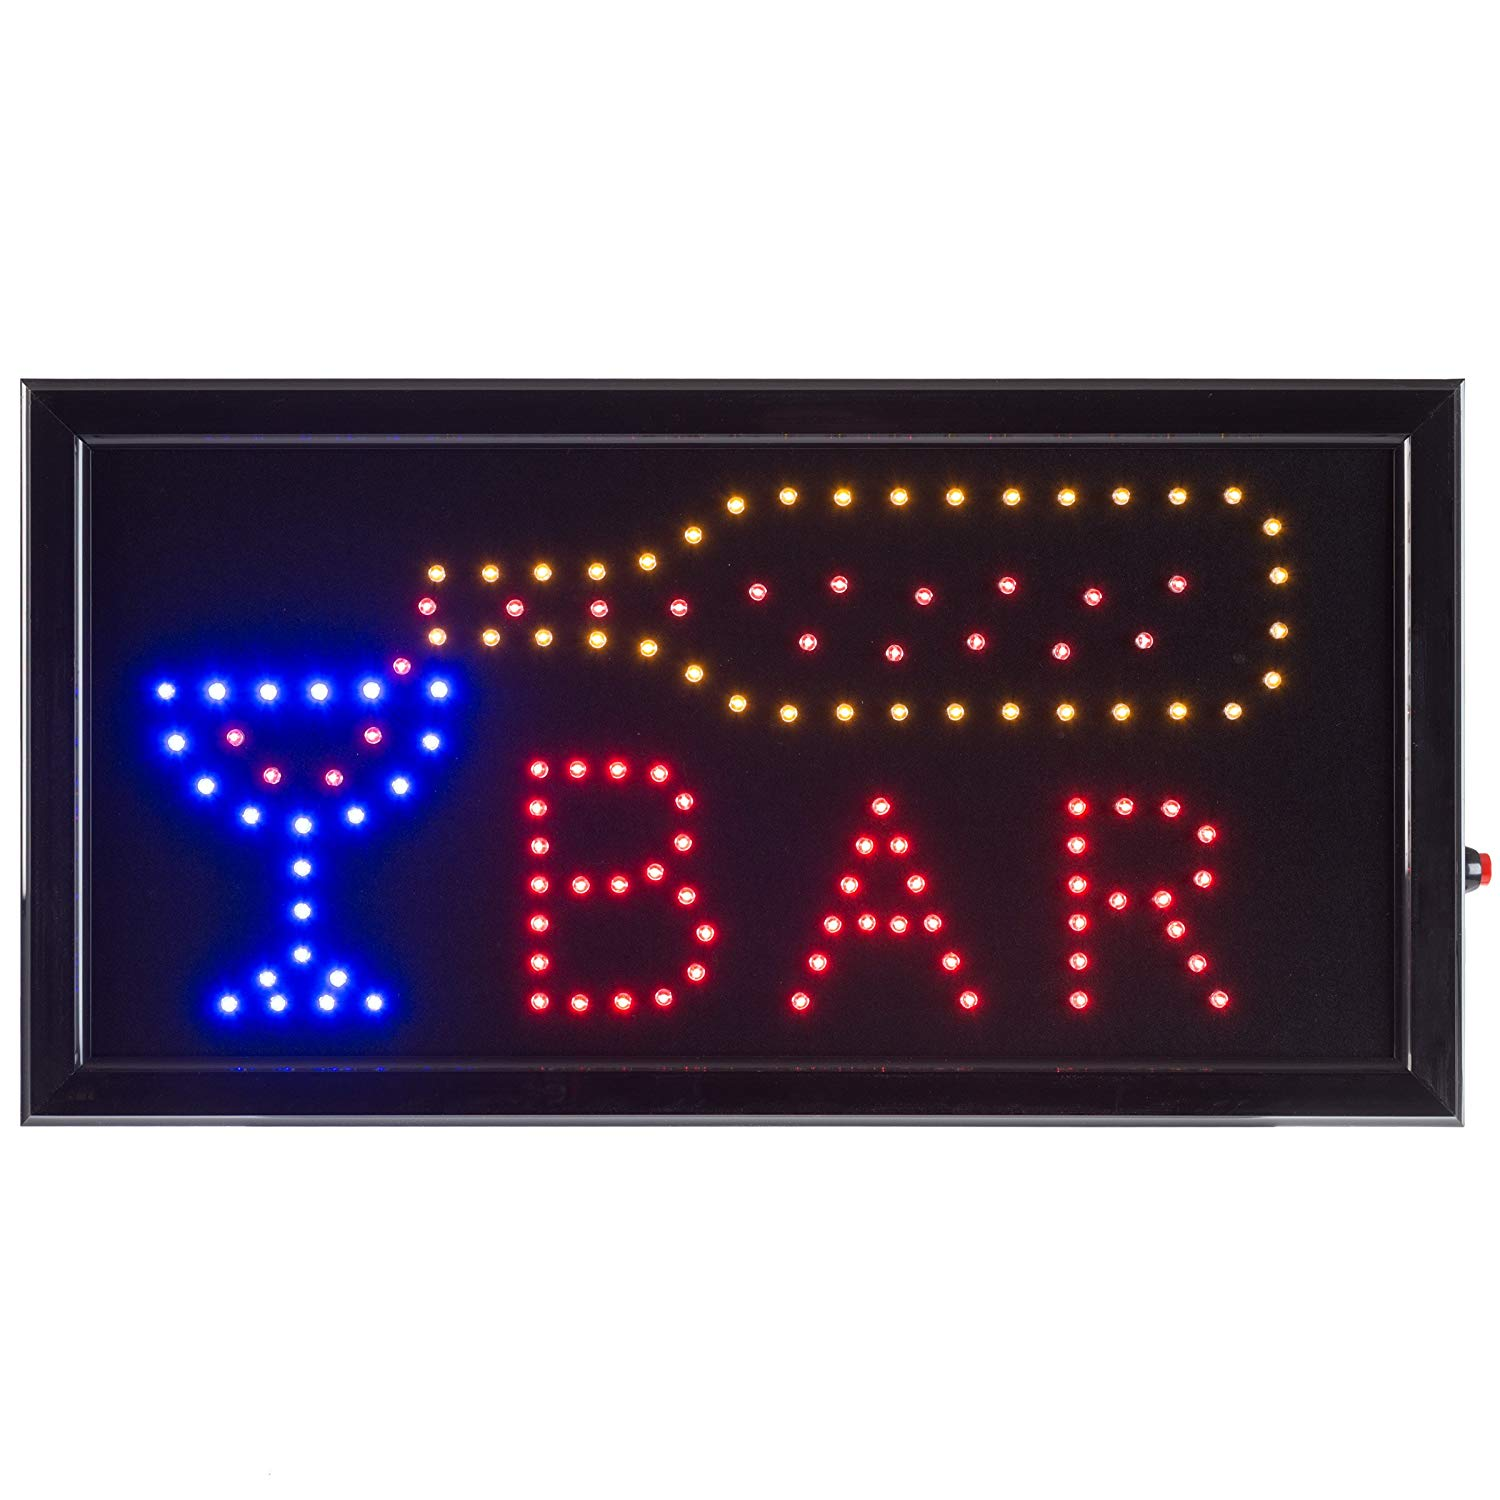 Bar LED Sign- Lighted Neon Electric Display Bar Sign With Animation and Energy Efficient LED For Home, Business, Special Events by Lavish Home